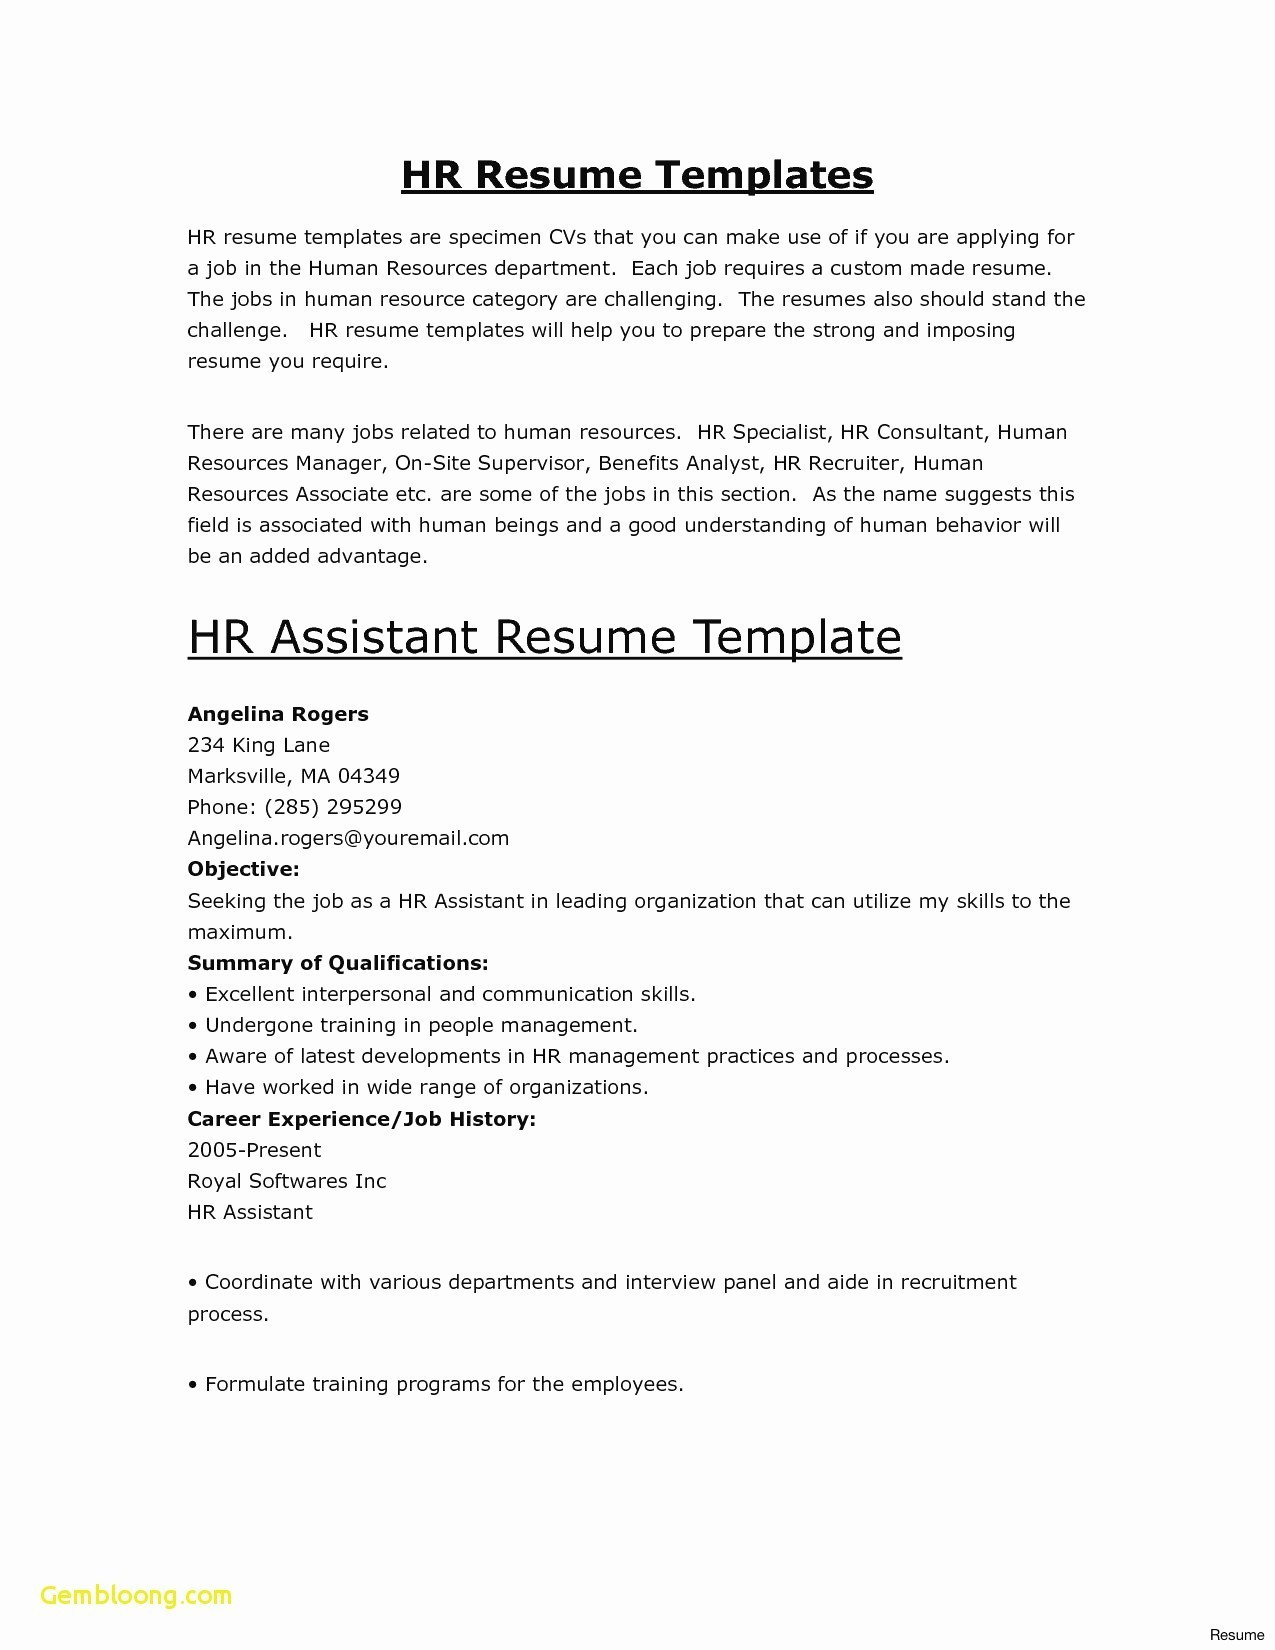 10 Resume Builder Templates Samples | Resume Database Template